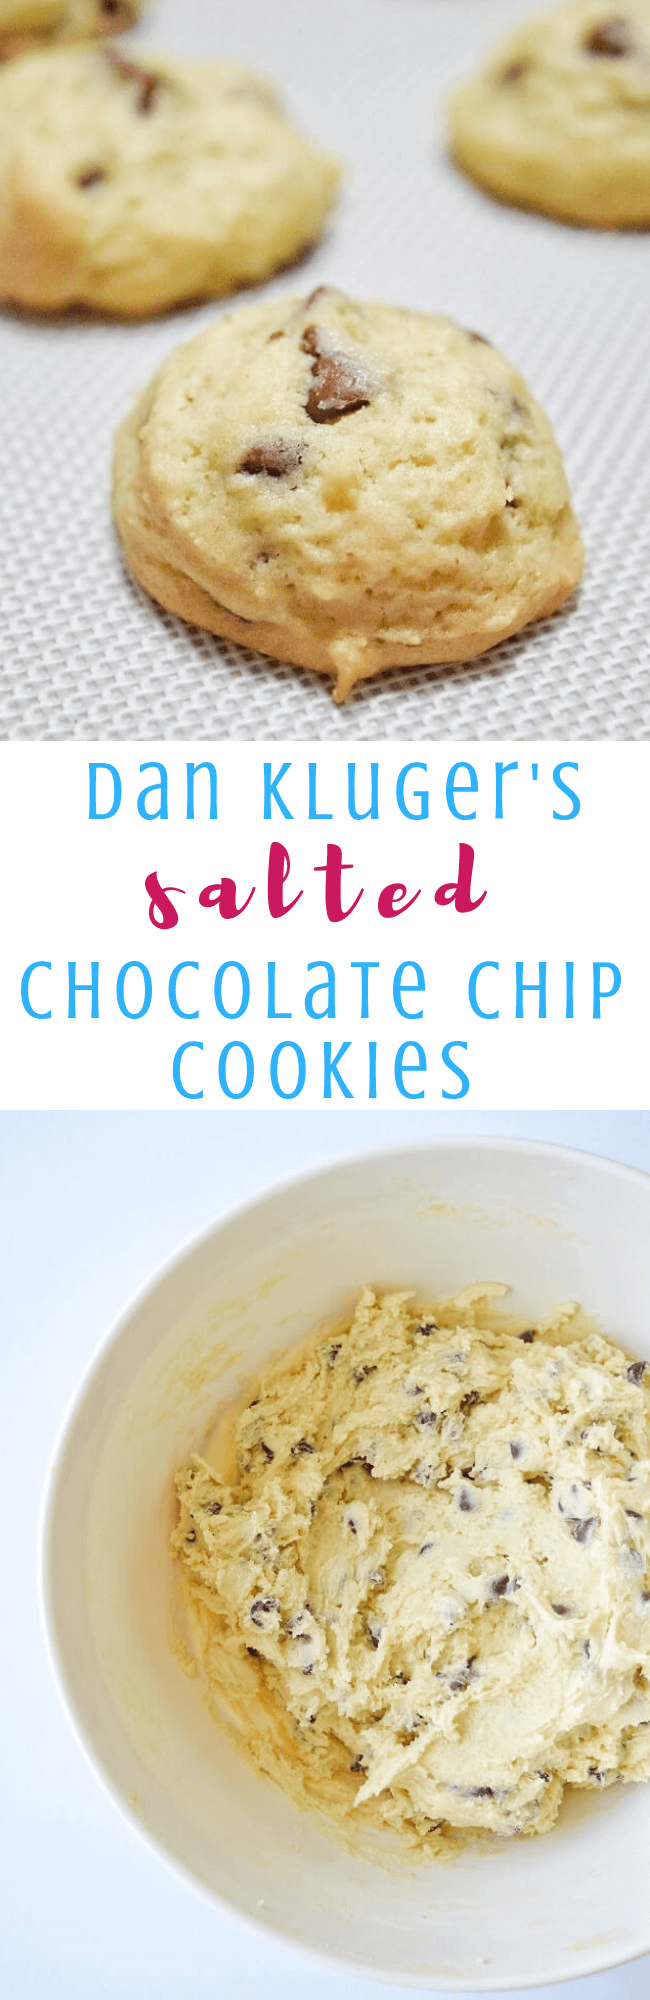 Dan Kluger's Salted Chocolate Chip Cookies (OXO + Cookies for Kids' Cancer Campaign) | Personally Paleo